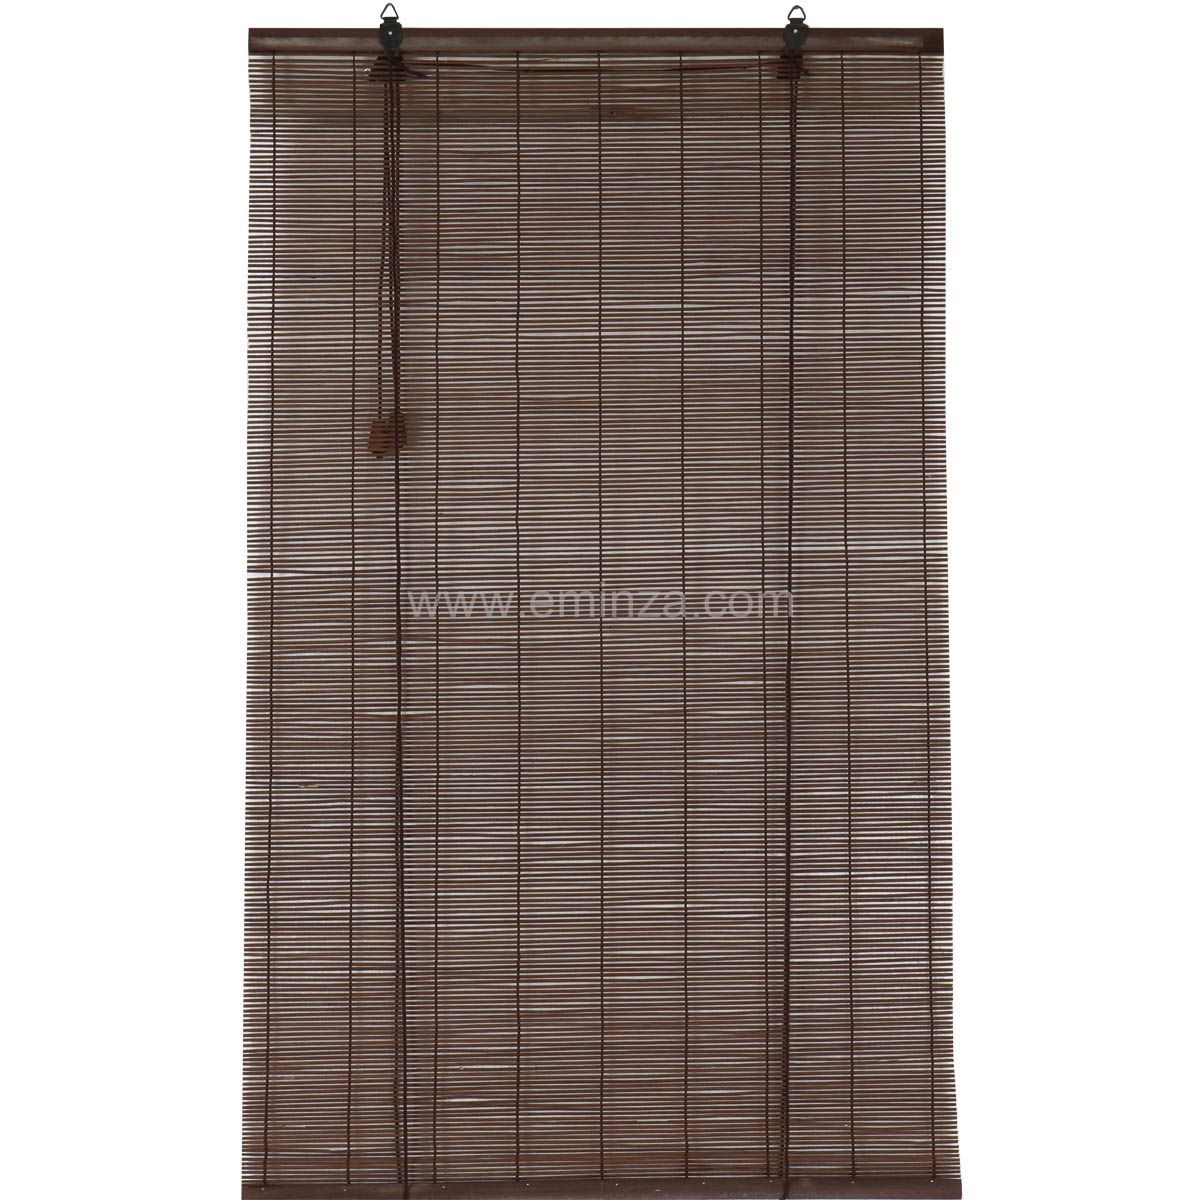 store enrouleur baguettes 60 x h130 cm bambou chocolat. Black Bedroom Furniture Sets. Home Design Ideas